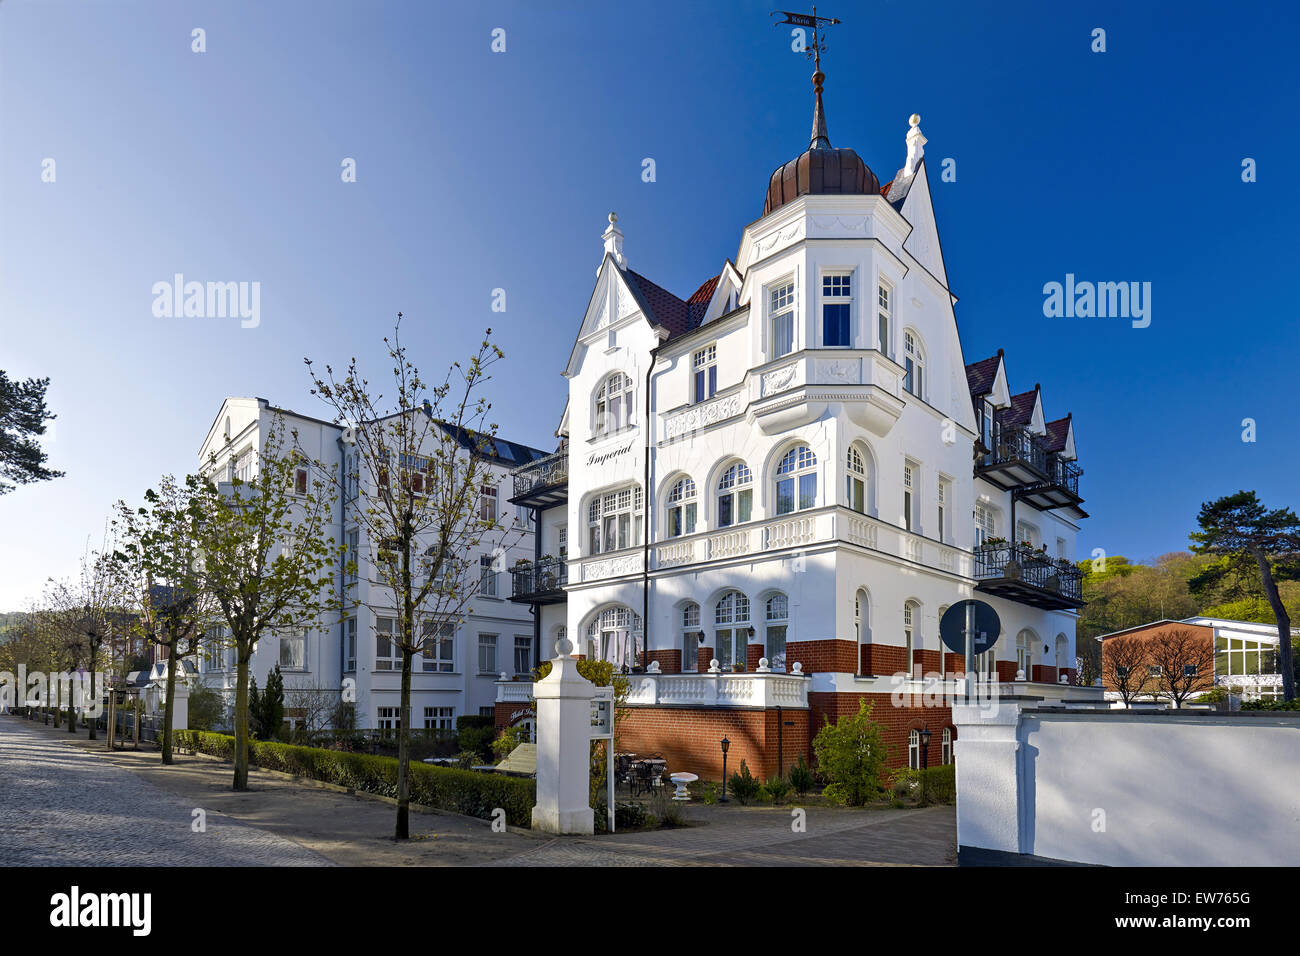 Resort architecture in the seaside resort Binz, Rügen, Germany - Stock Image